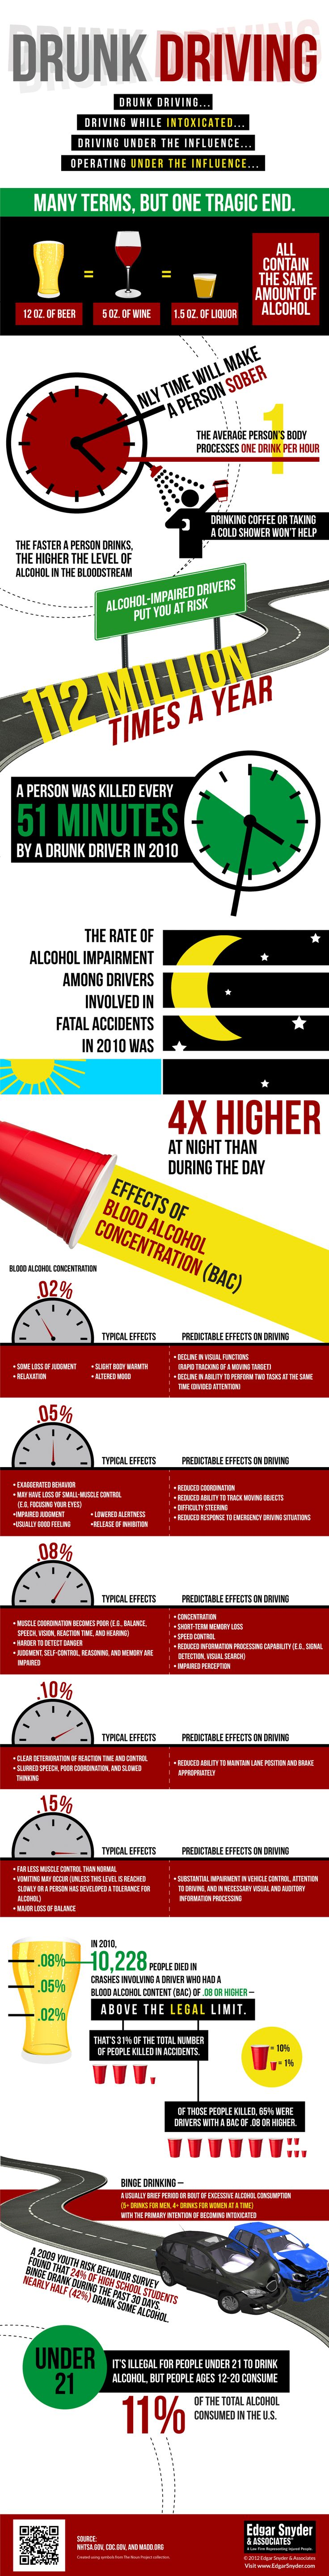 best ideas about drunk driving advertising ads drunk driving infographic information on drunk driving underage drinking and more